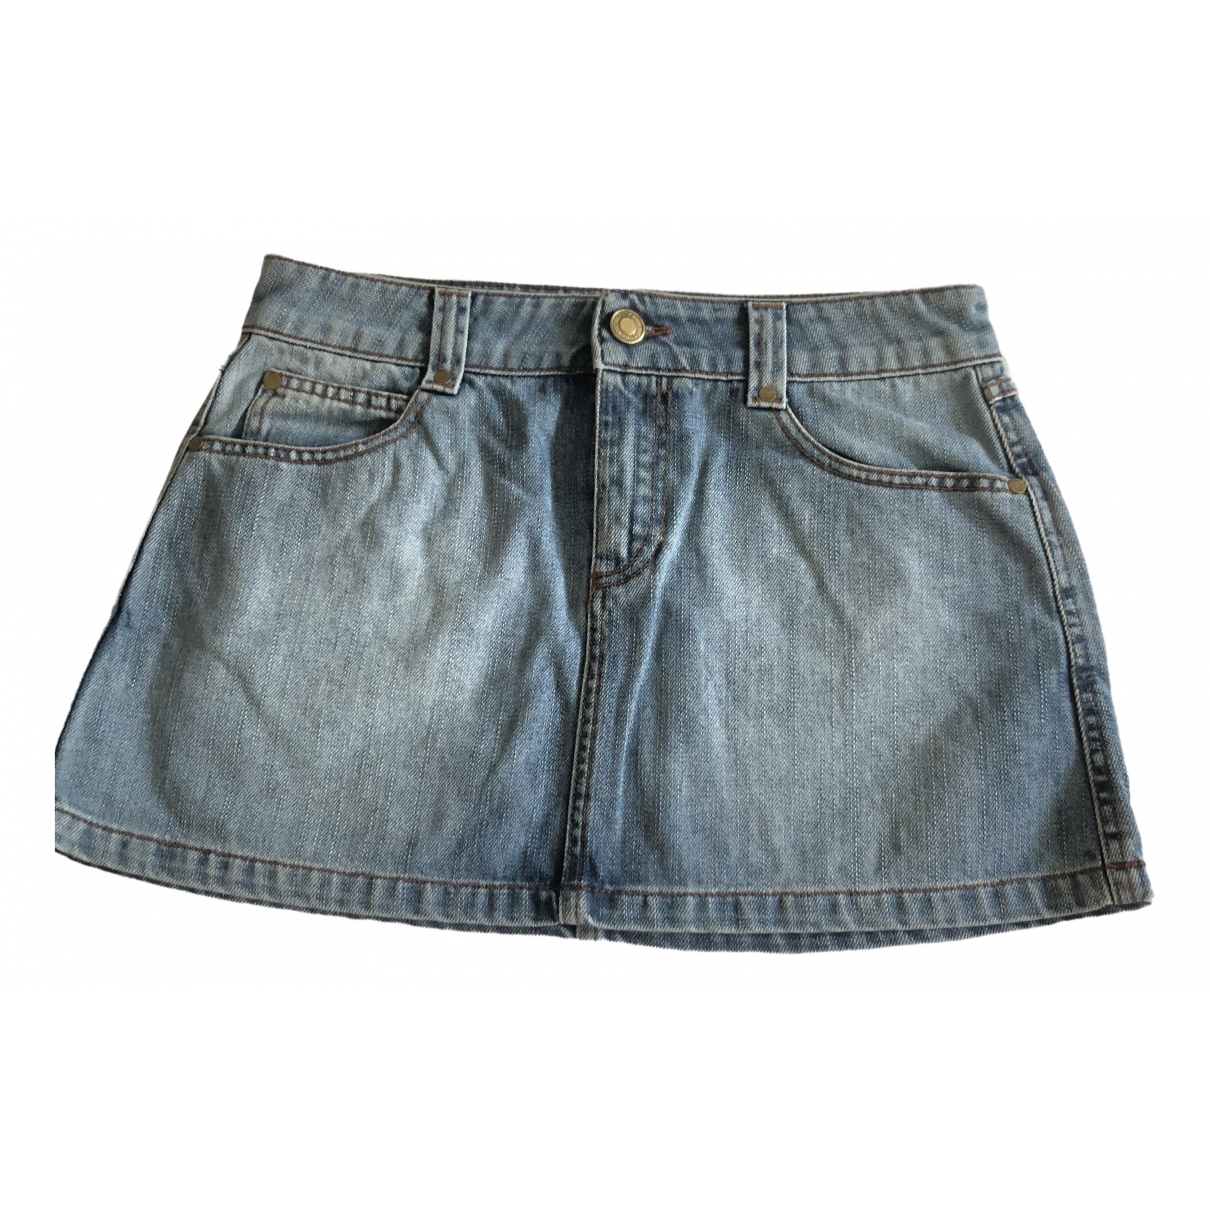 Gucci \N Blue Denim - Jeans skirt for Women 38 IT